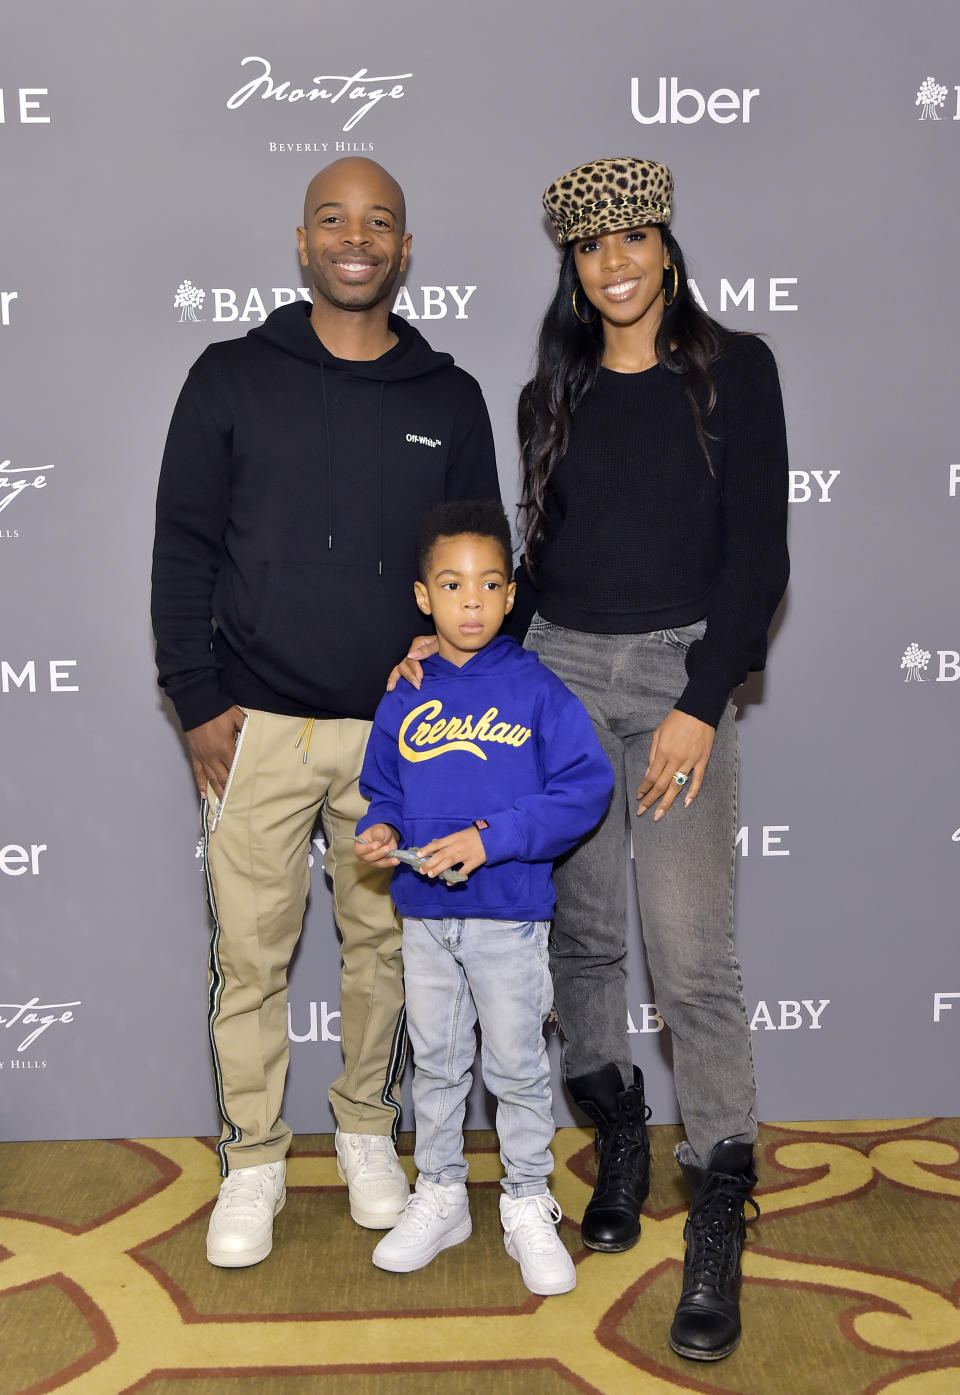 Tim Weatherspoon, Titan Jewell Weatherspoon and Kelly Rowland attend The Baby2Baby Holiday Party Presented By FRAME And Uber at Montage Beverly Hills on December 15, 2019 in Beverly Hills, California. (Photo by Stefanie Keenan/Getty Images for Baby2Baby)